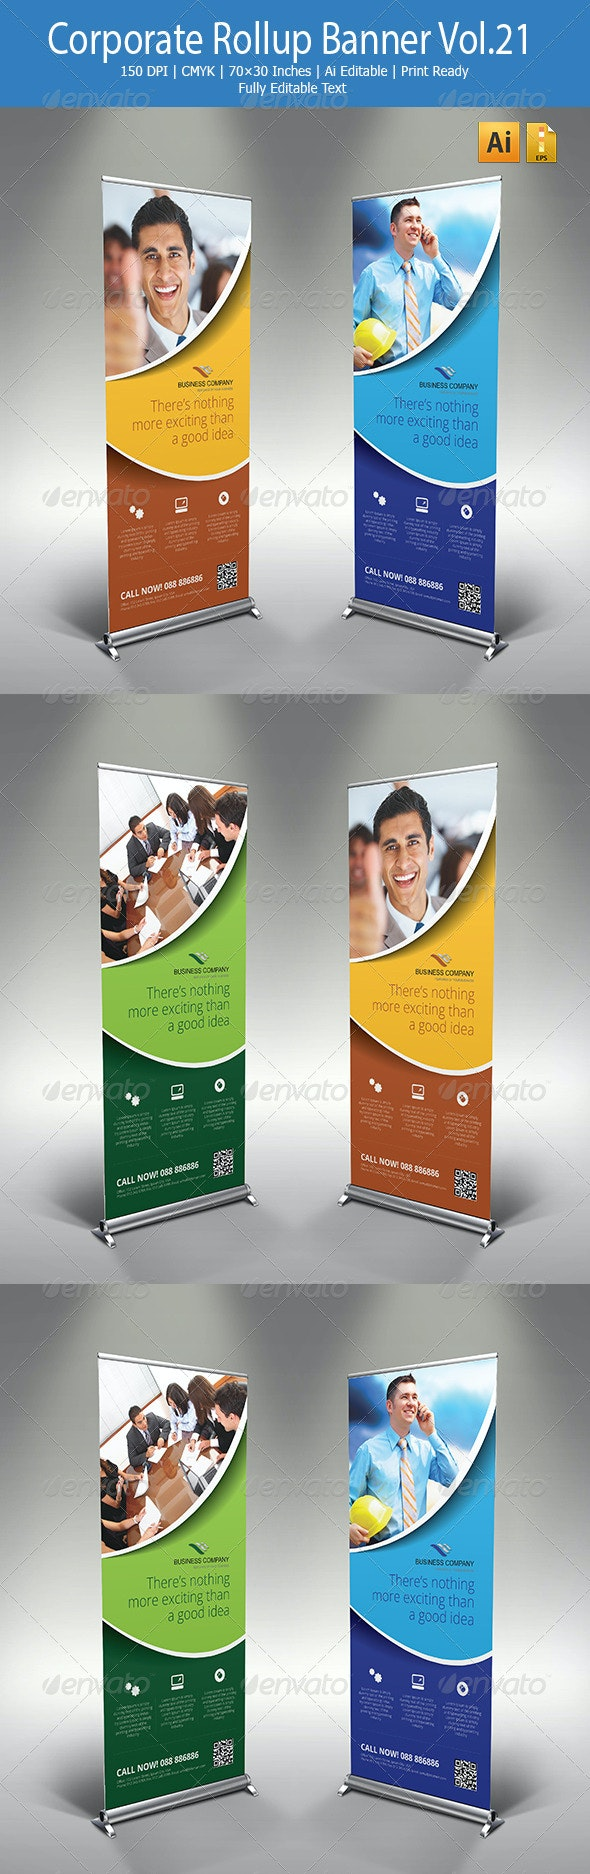 Corporate Rollup Banner Vol.21 - Signage Print Templates